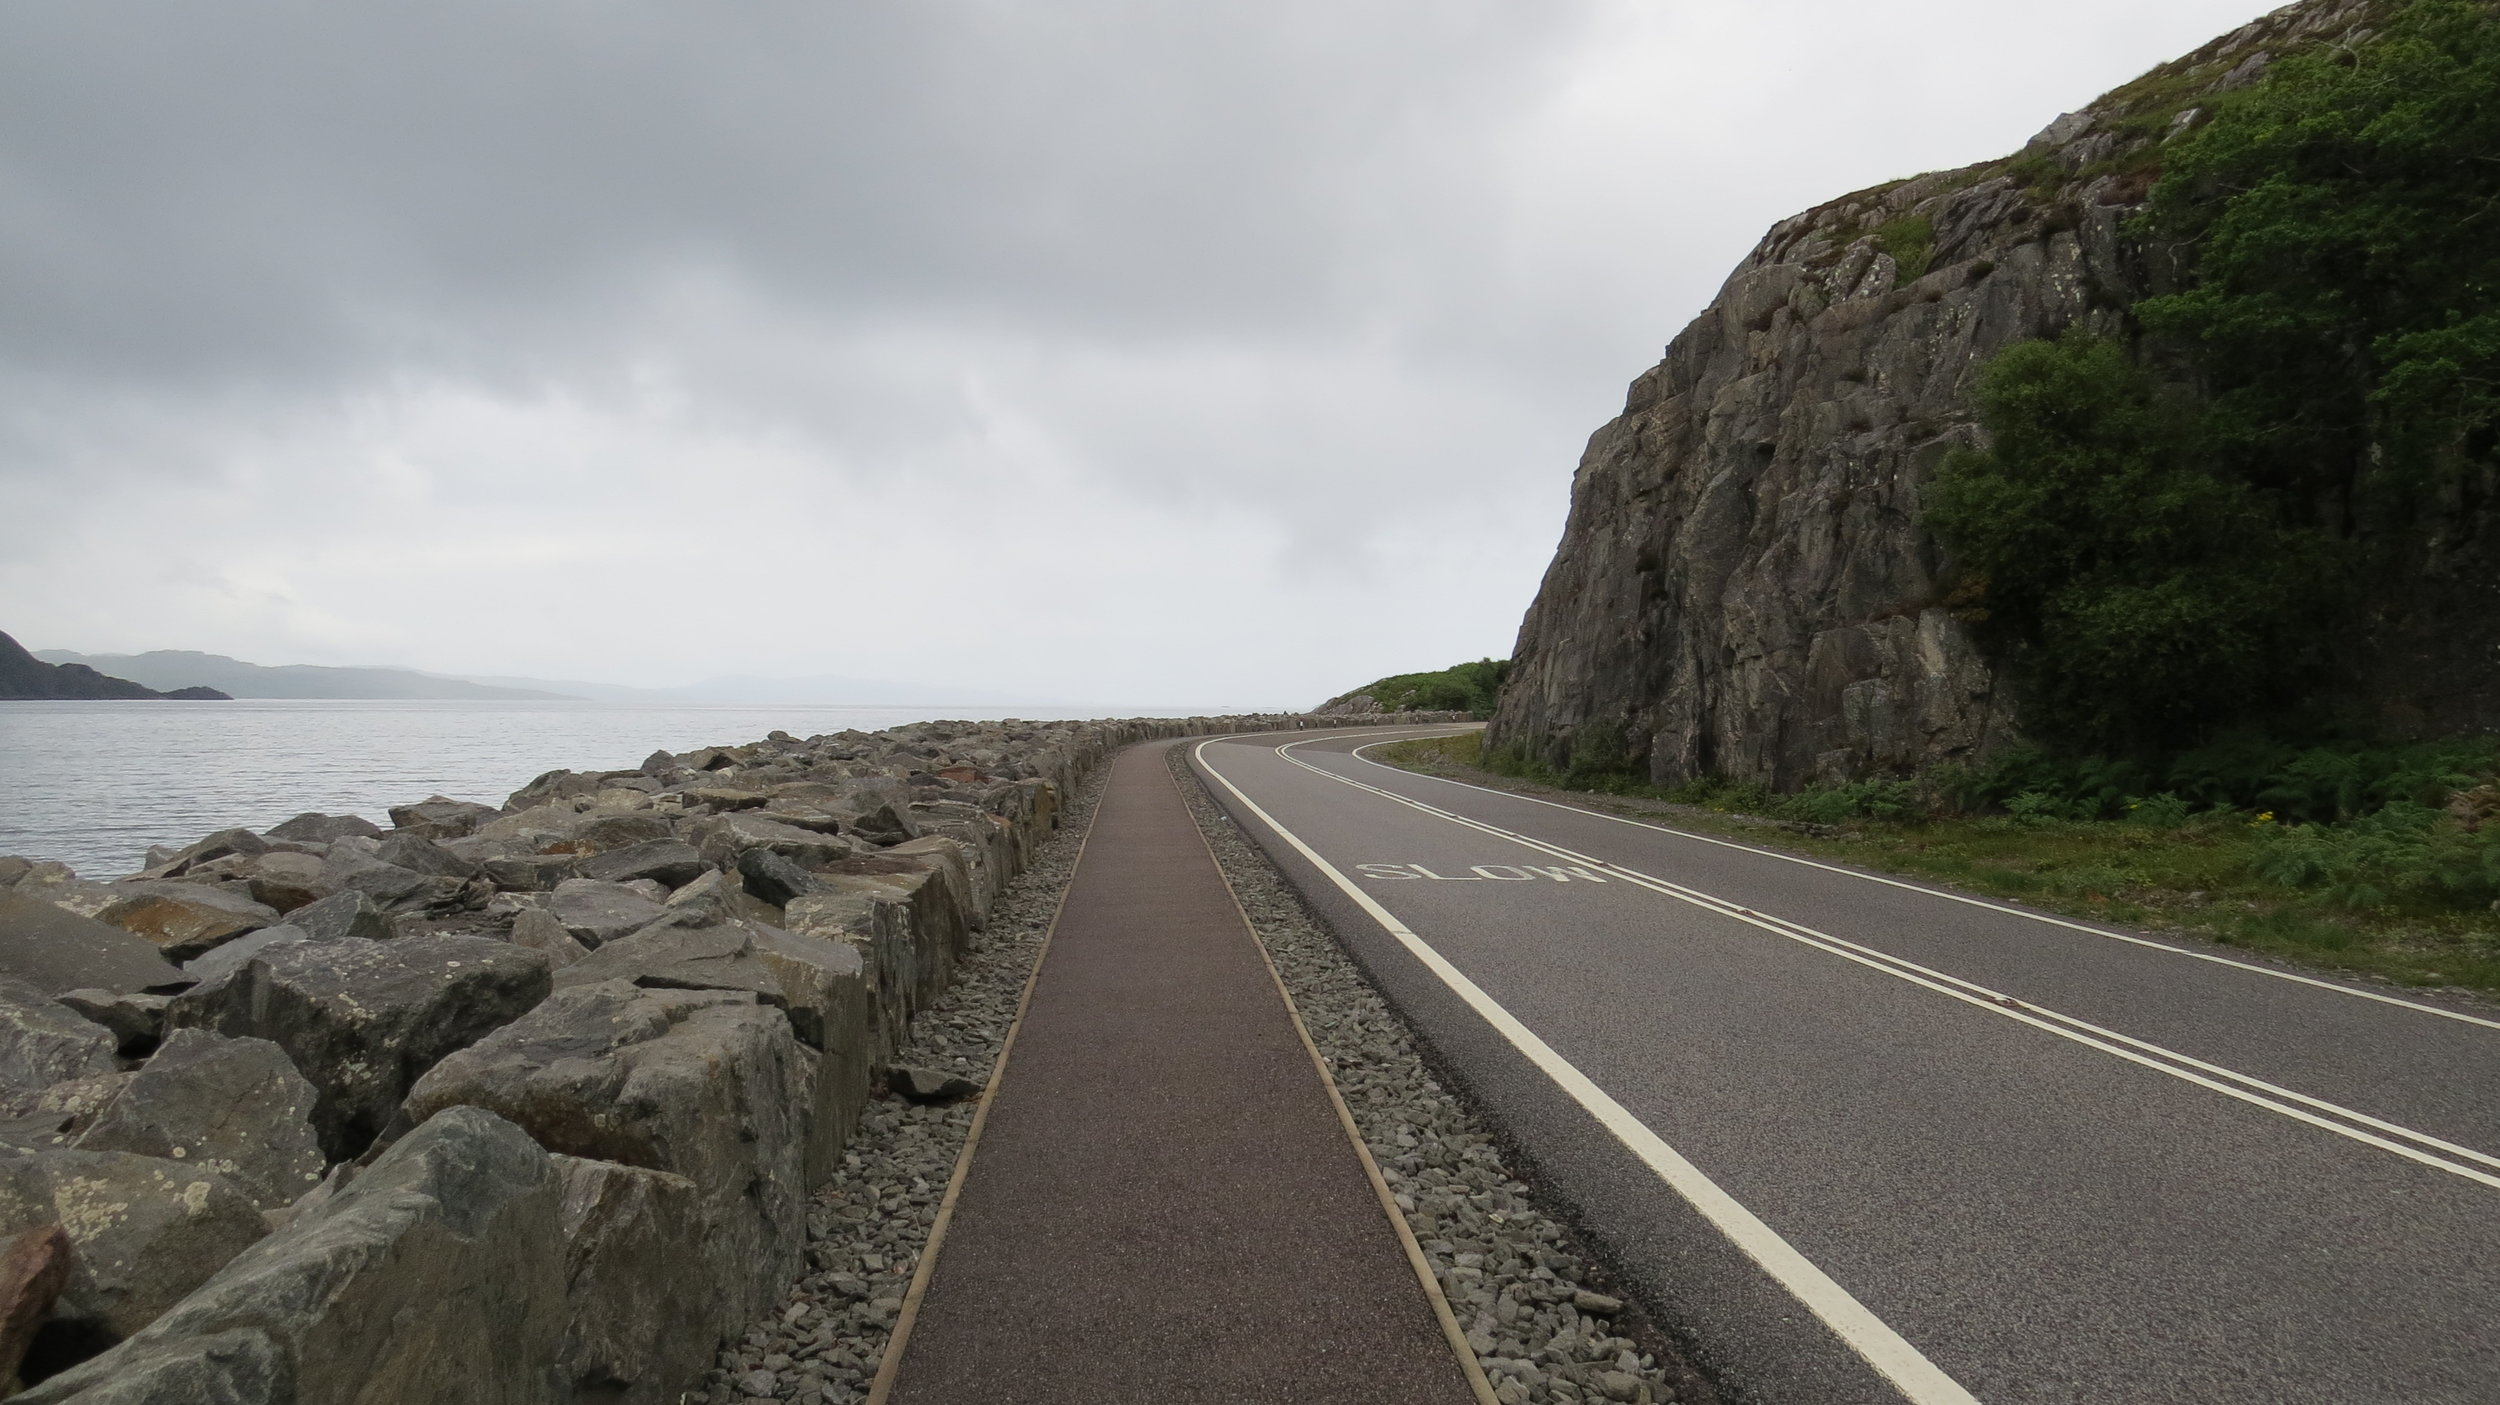 A830 Cylcleway